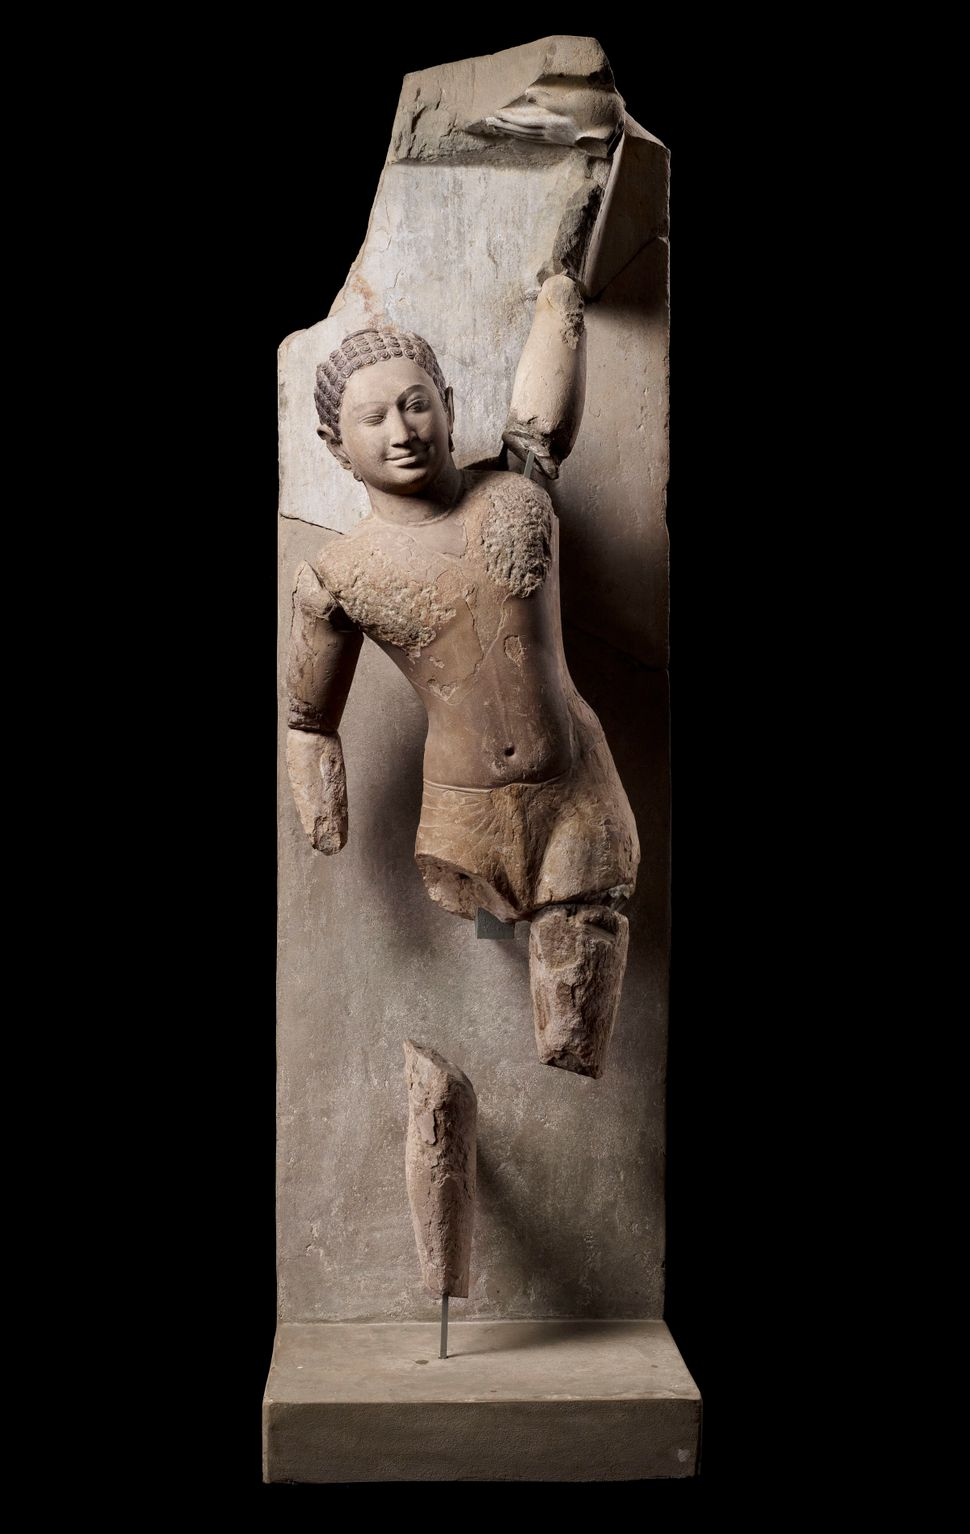 Krishna Govardhana, Sandstone, Lent by National Museum of Cambodia, Phnom Penh, Photo: Thierry Ollivier